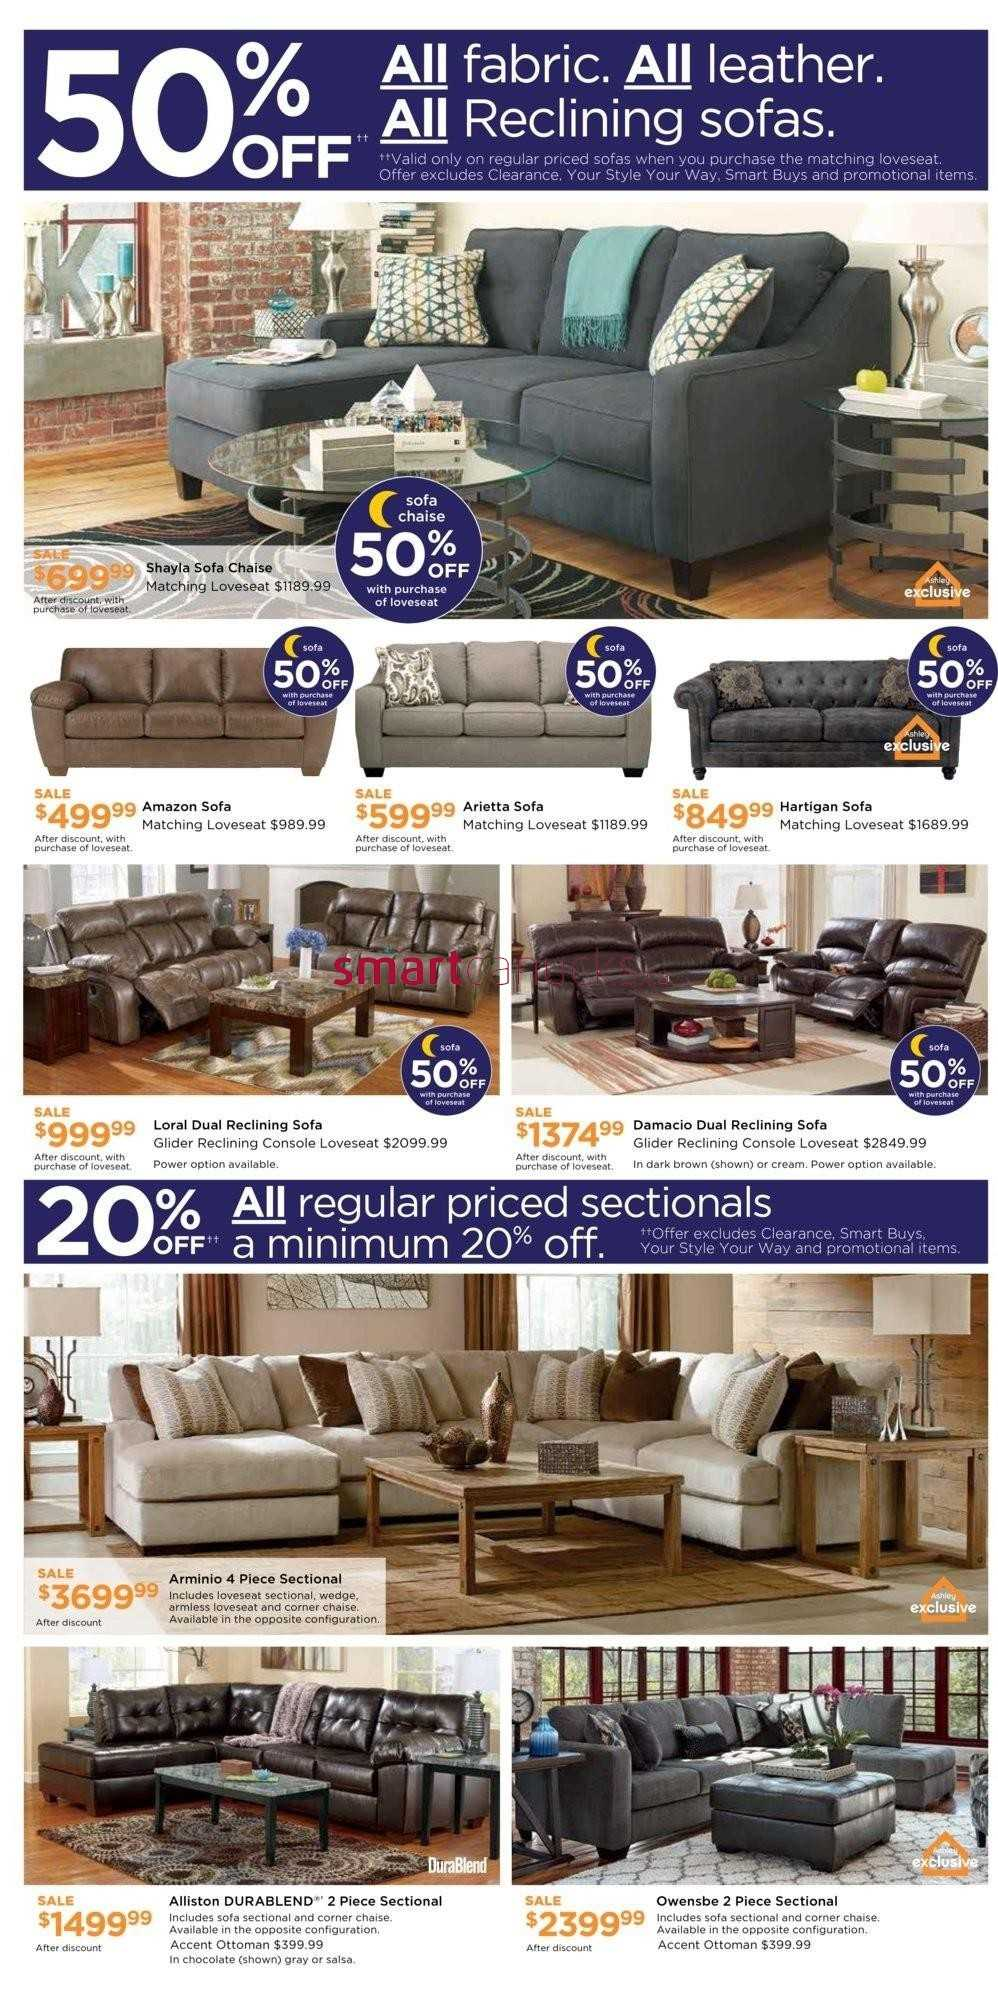 Ashley Furniture Homestore On Flyer June 22 To 26